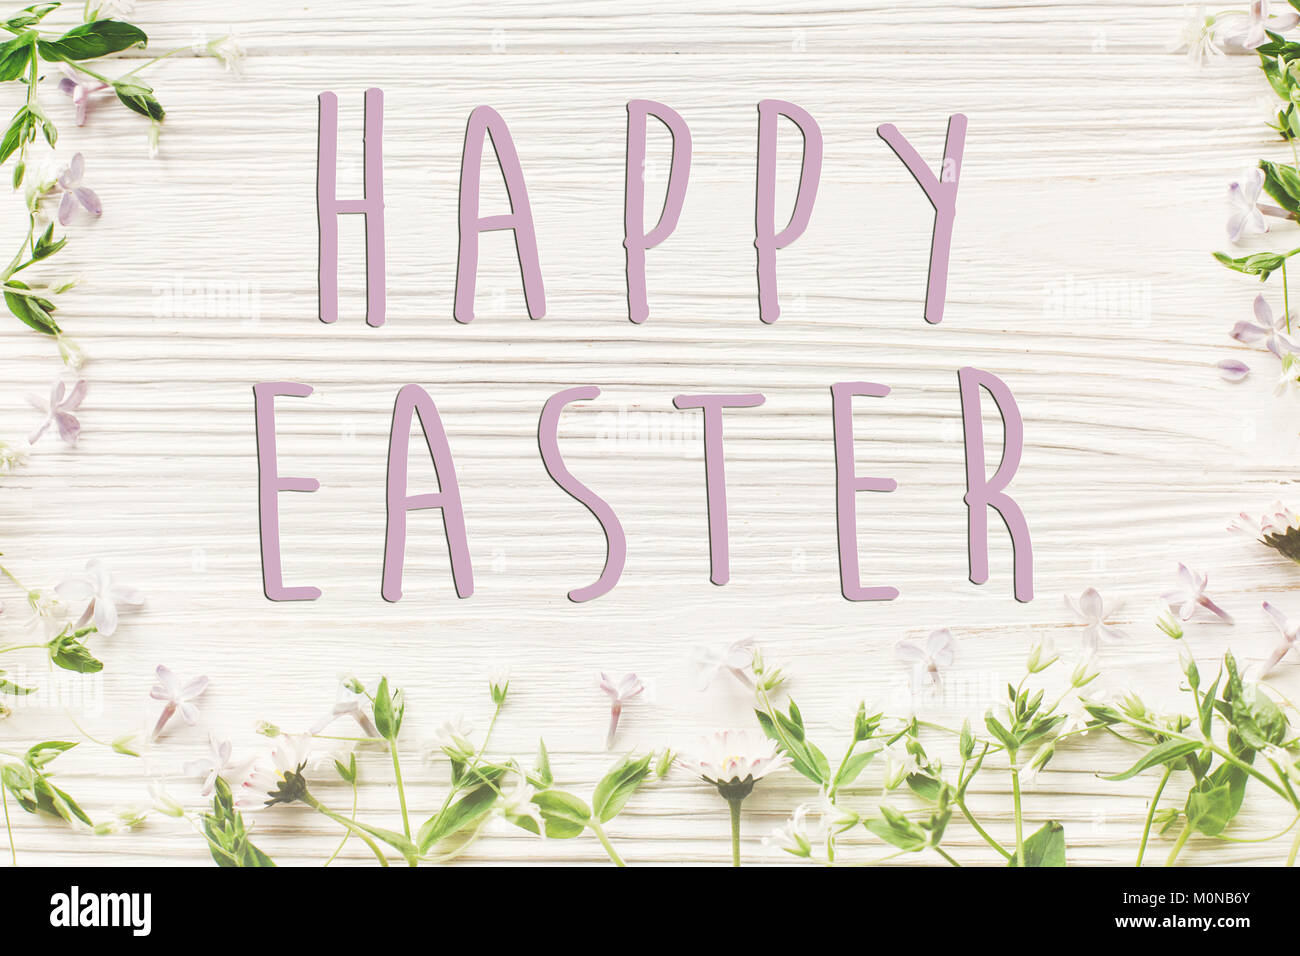 Happy easter text sign simple greeting card fresh daisy lilac happy easter text sign simple greeting card fresh daisy lilac flowers and green herbs frame on white wooden rustic background top view spring fla m4hsunfo